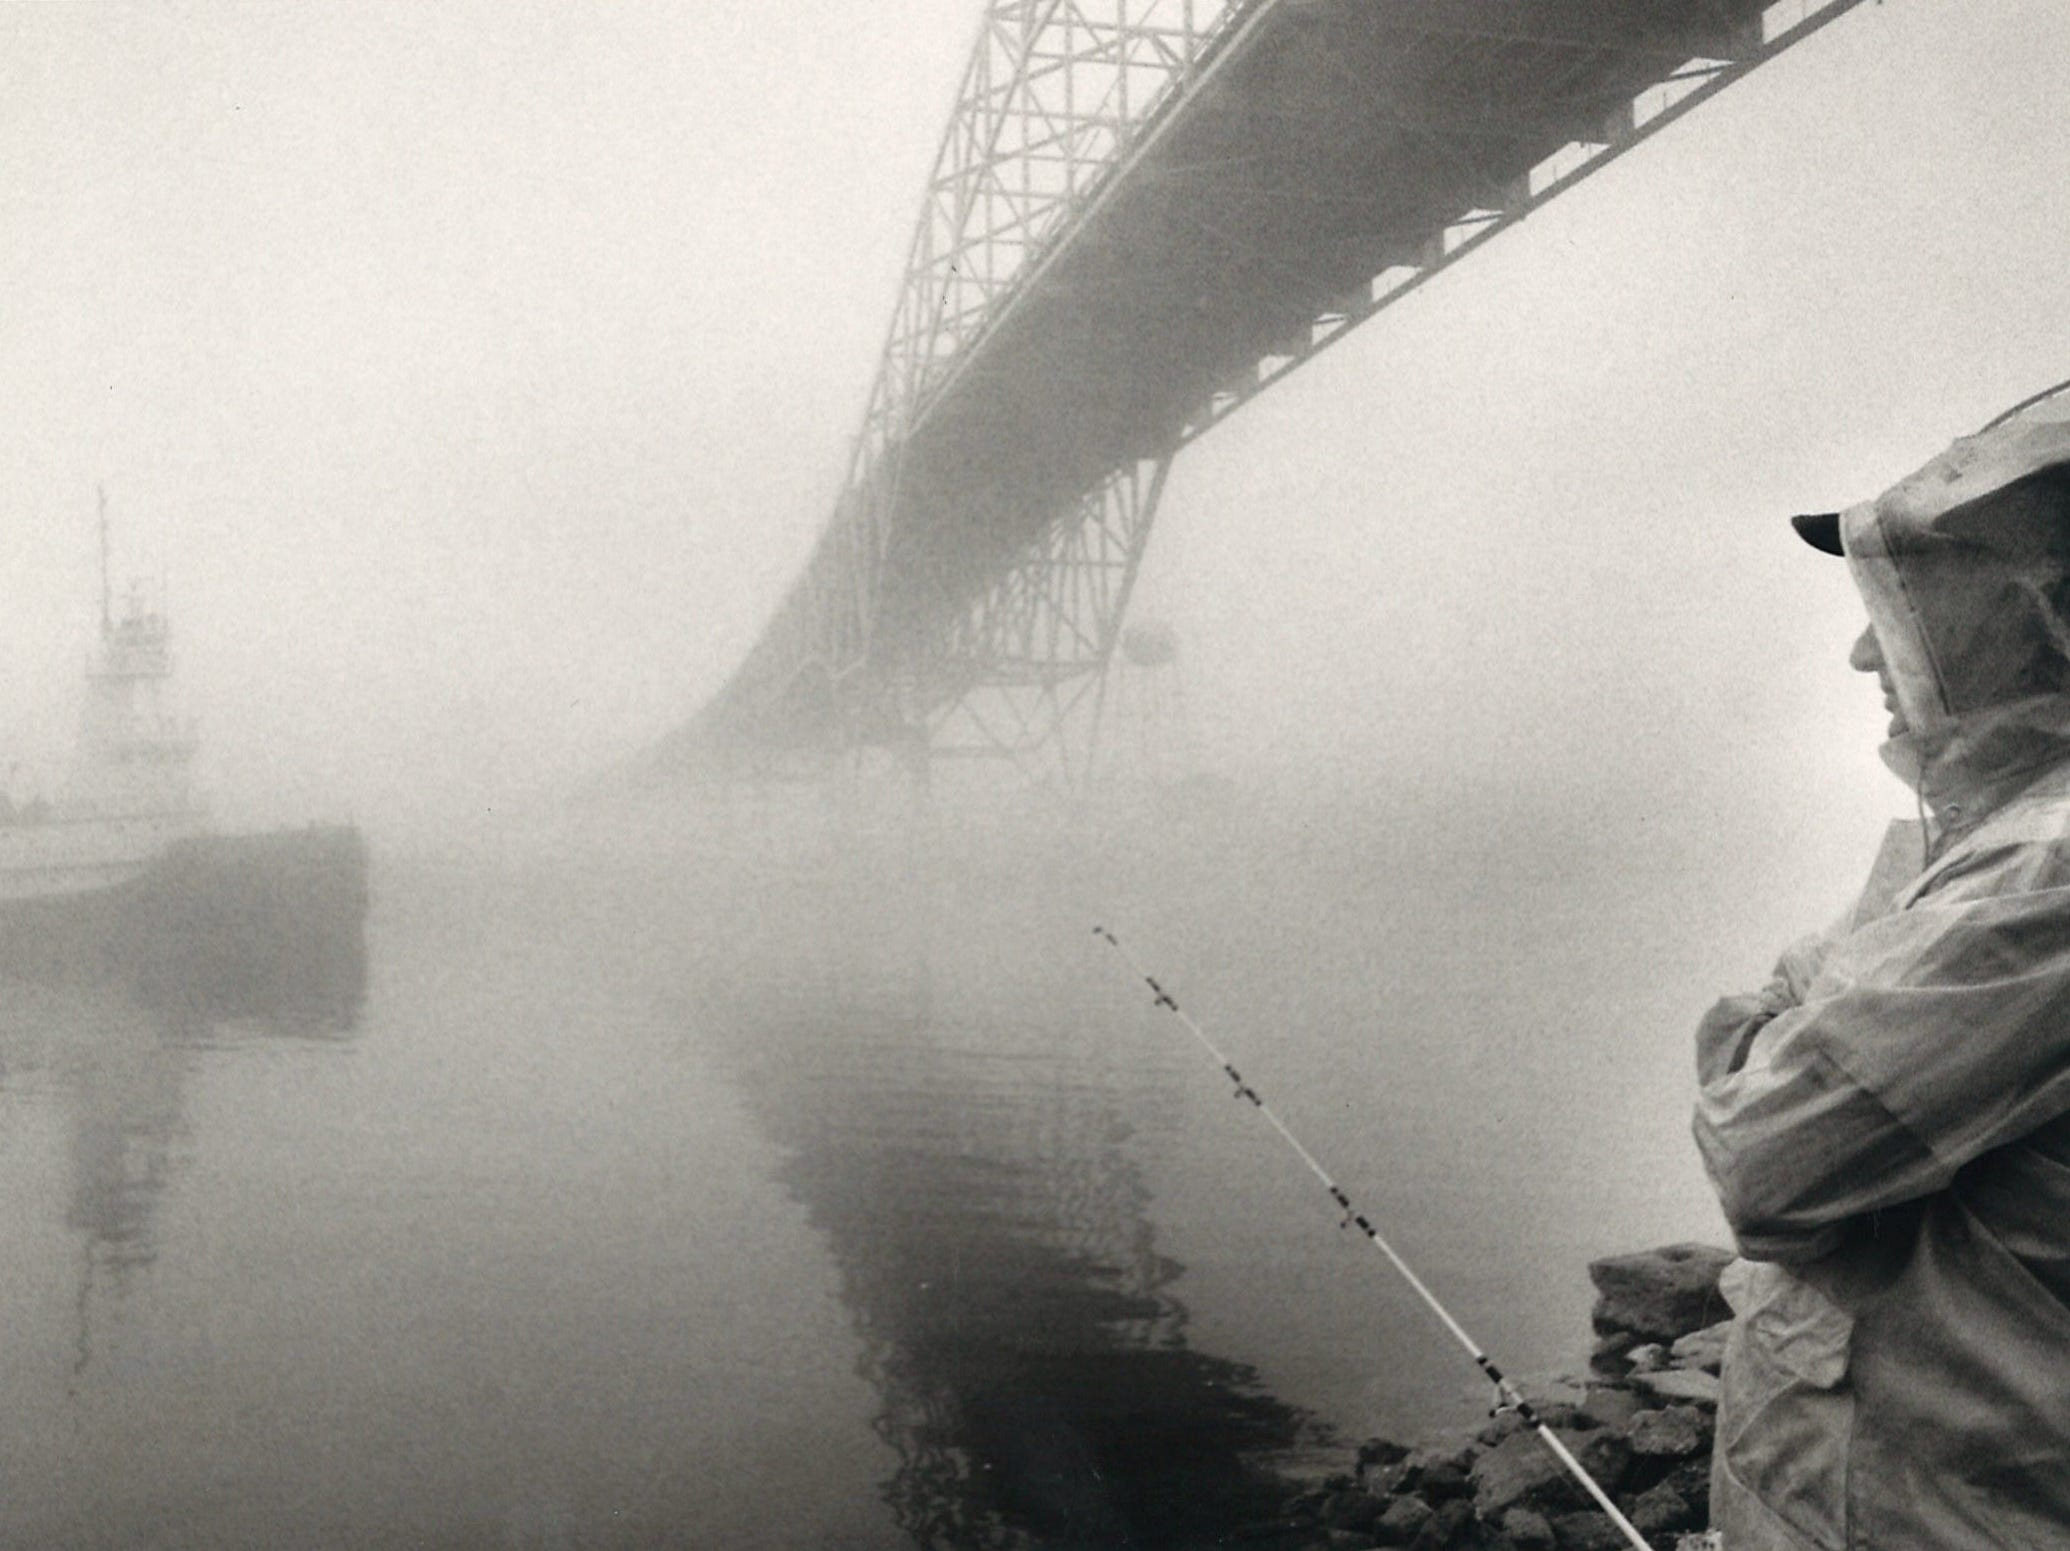 Bob Madison watches a tug boat manuever through the dense fog as he fishes under the Harbor Bridge in Corpus Christi on Jan. 30, 1985.